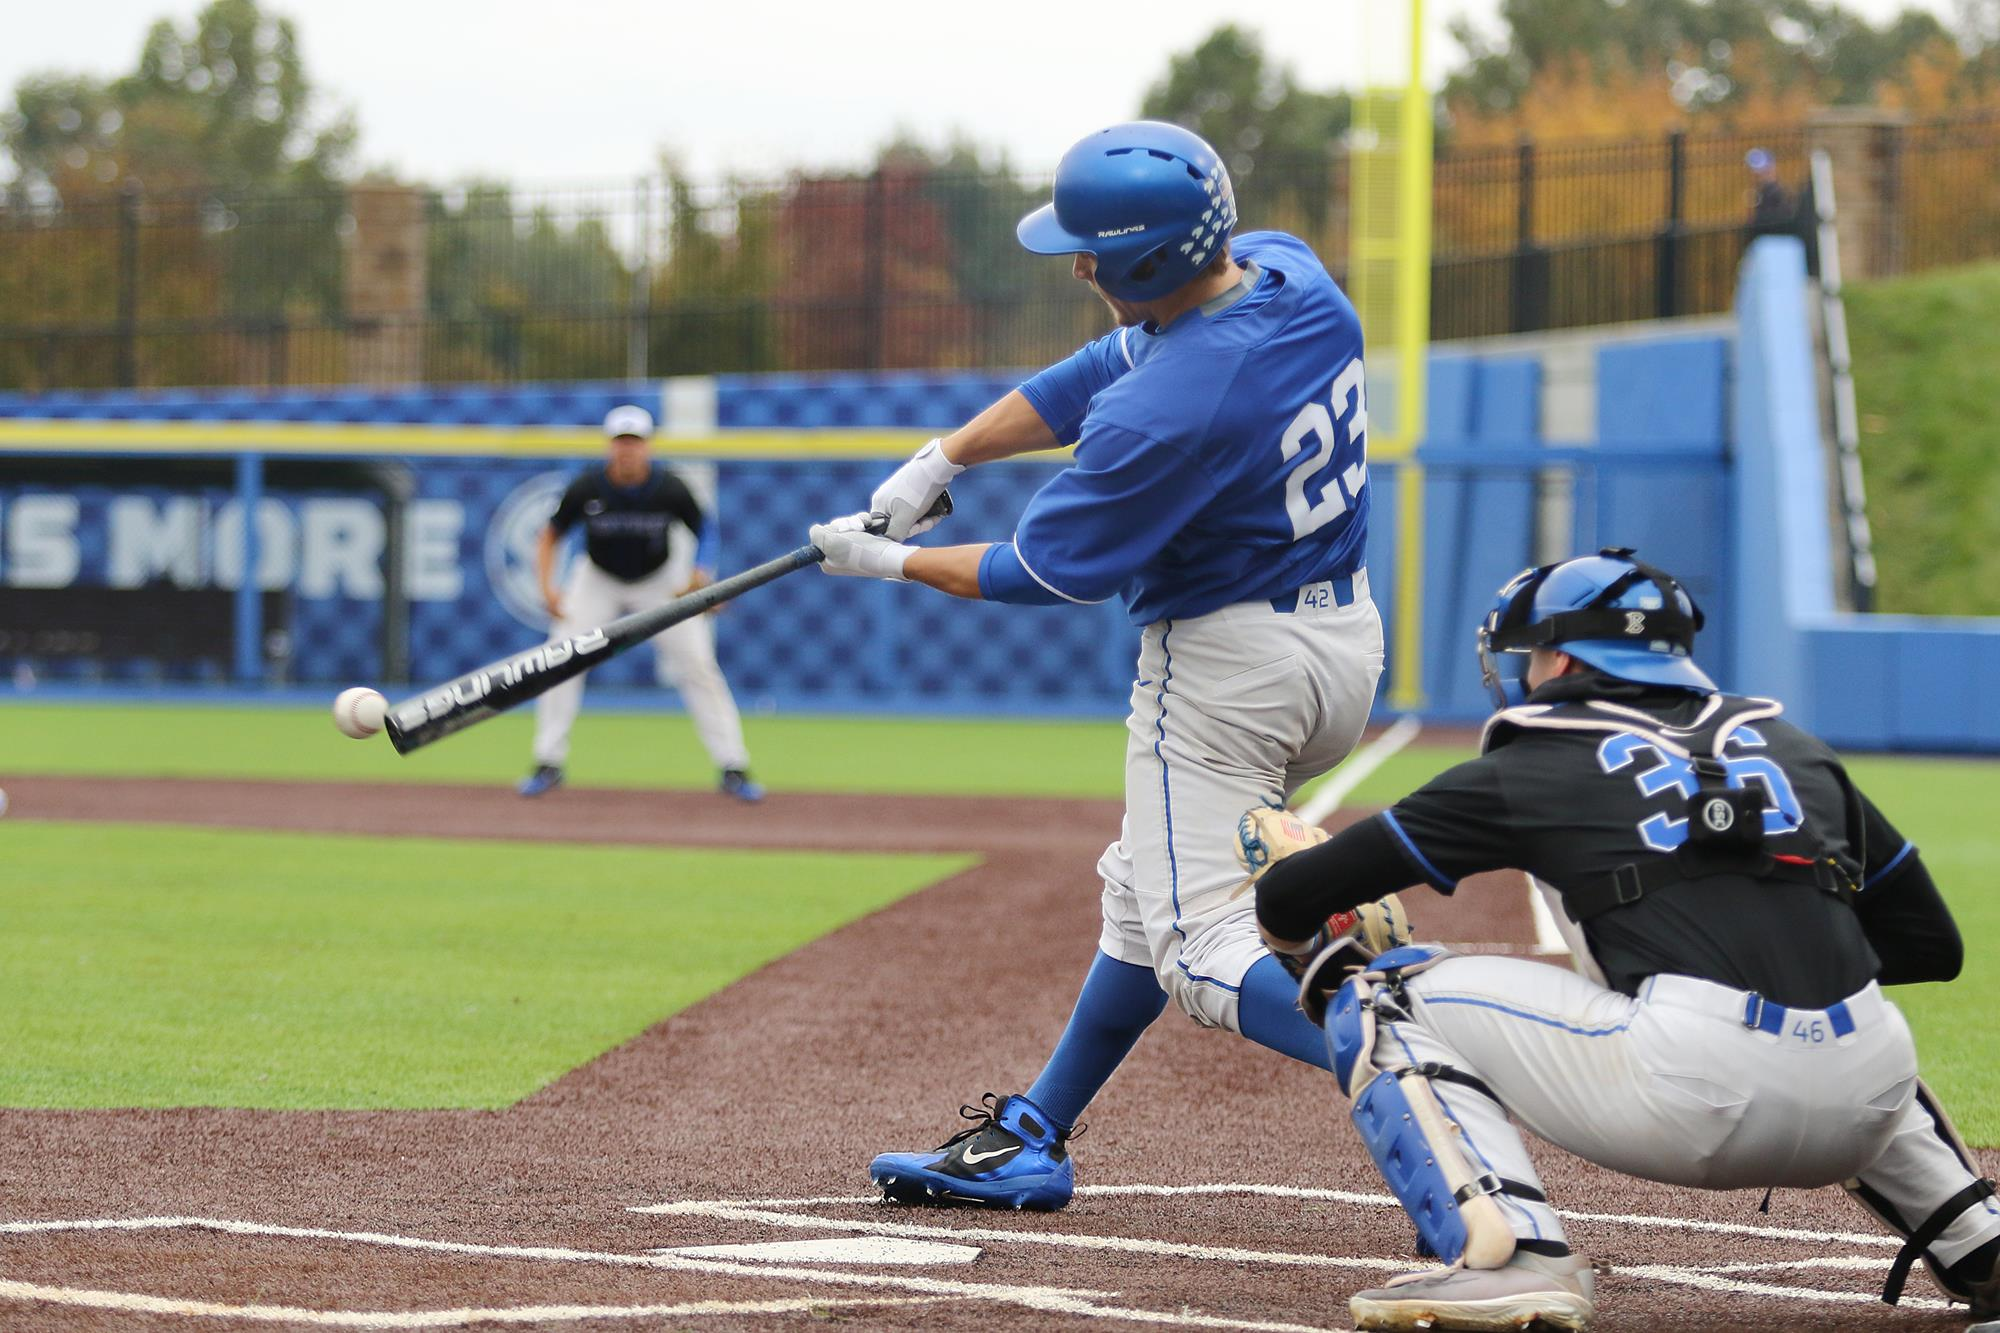 Former Ontario Terrier Elliott Curtis (Waterloo, Ont.) had two hits for the Kentucky Wildcats to help them to a 7-4 win over Michigan on Tuesday. Photo: UK Athletics (file photo)